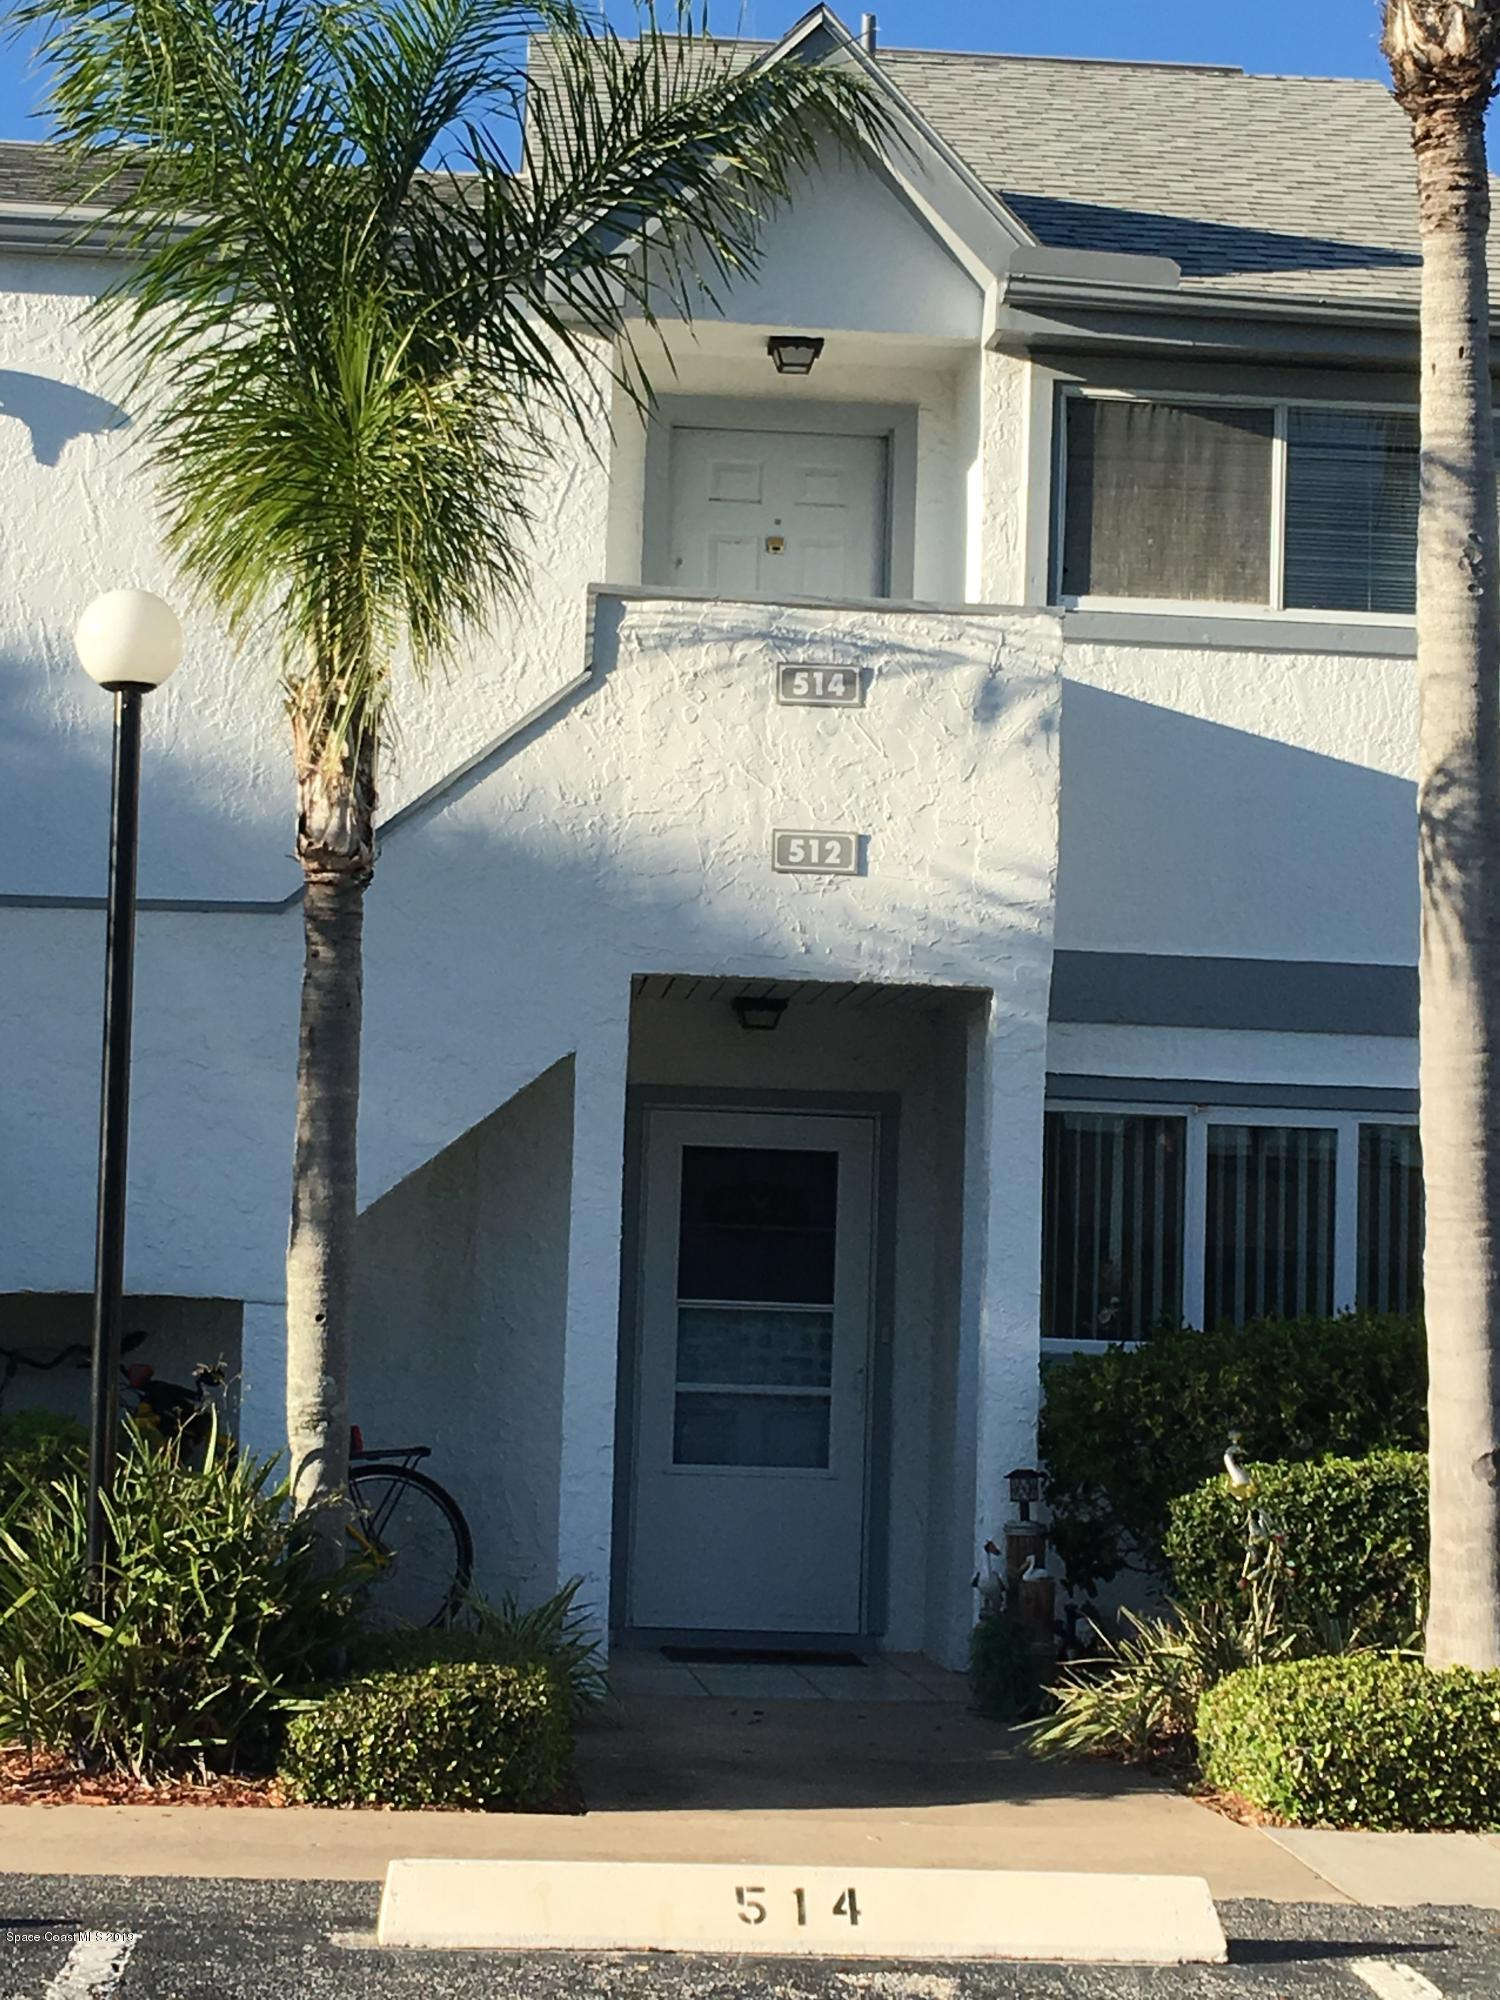 Single Family Home for Rent at 514 Beach Park 514 Beach Park Cape Canaveral, Florida 32920 United States